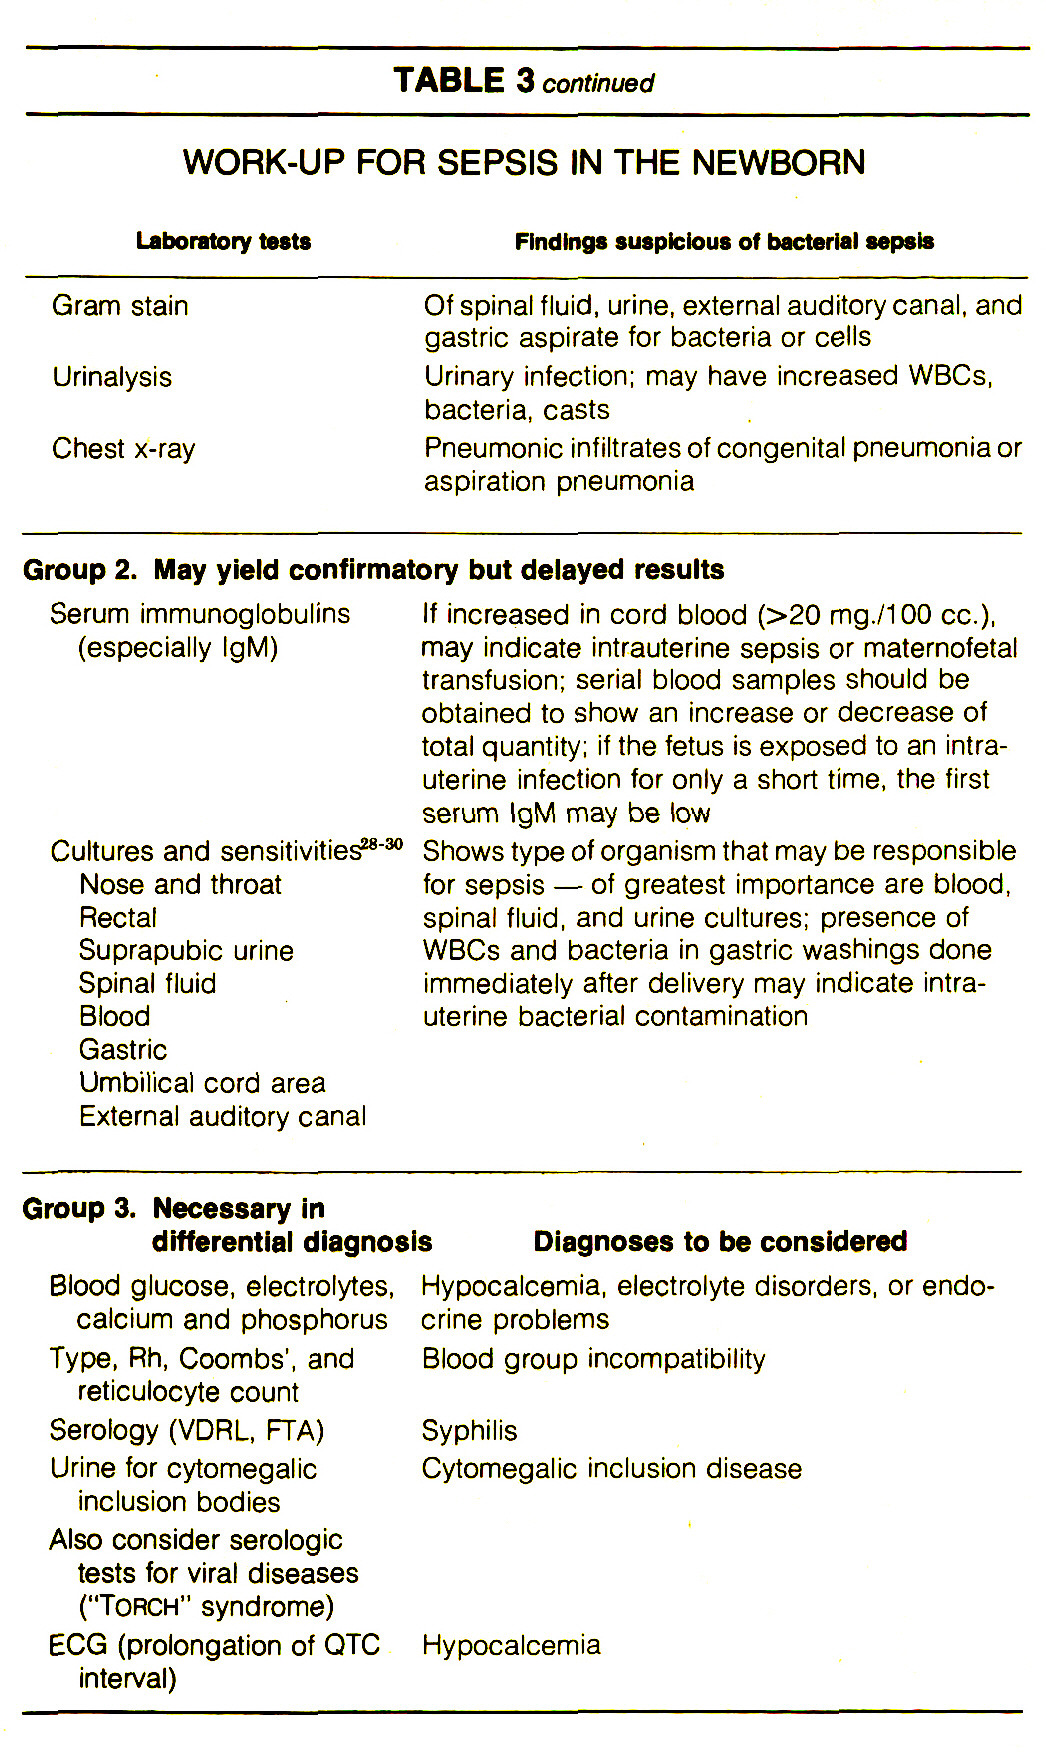 TABLE 3WORK-UP FOR SEPSIS IN THE NEWBORN